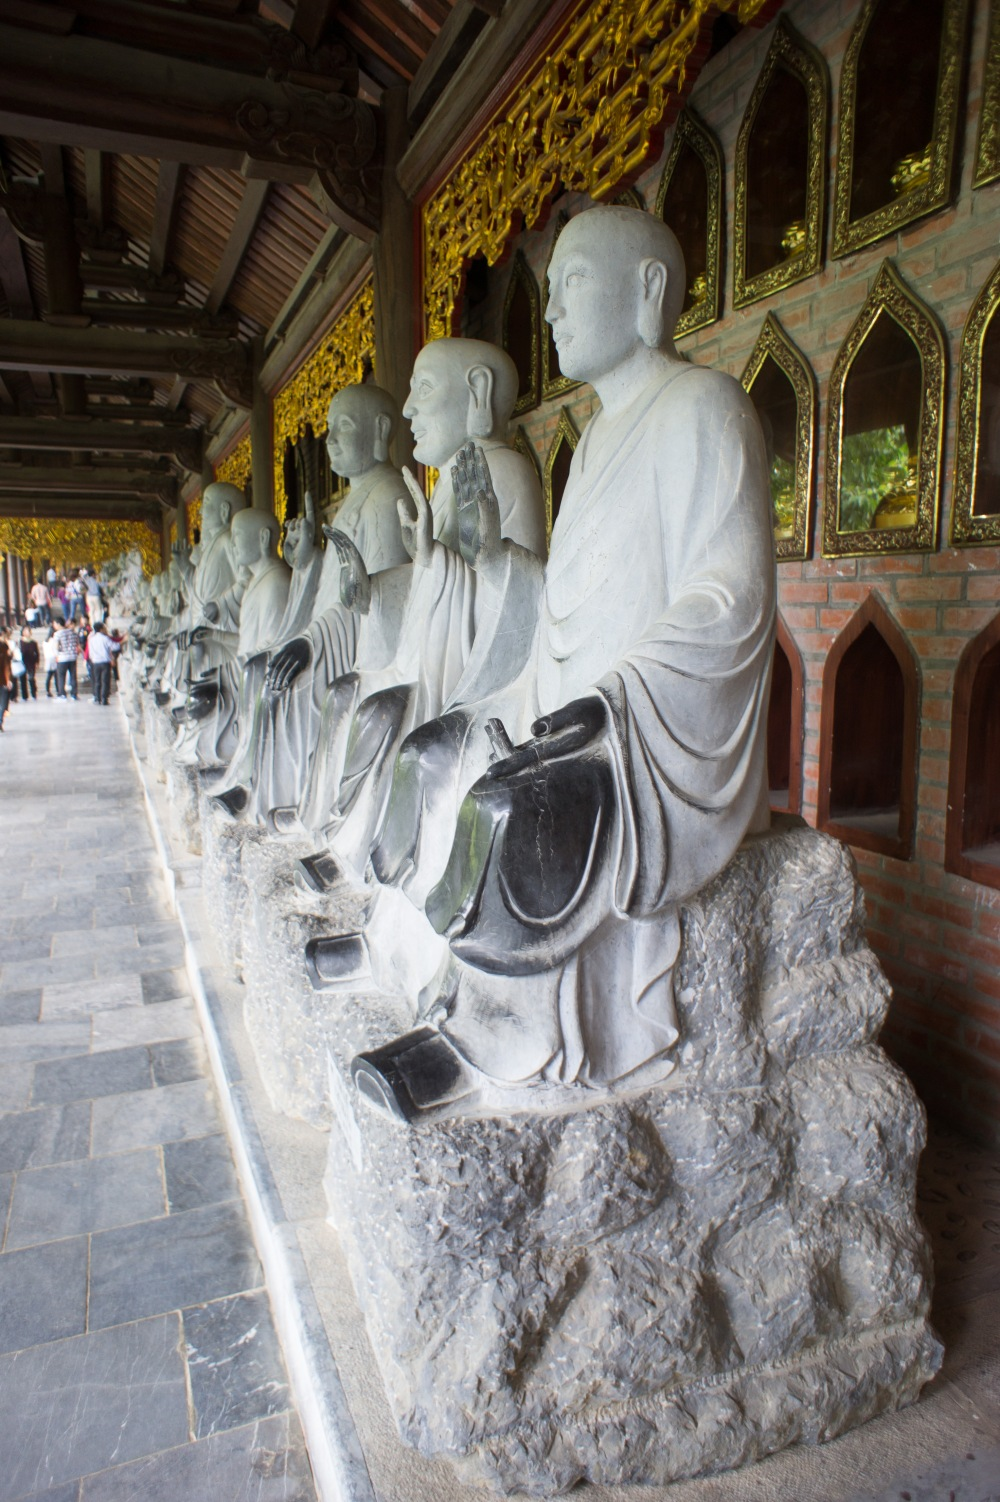 Hall of Buddhas at the Bich Dong Pagoda